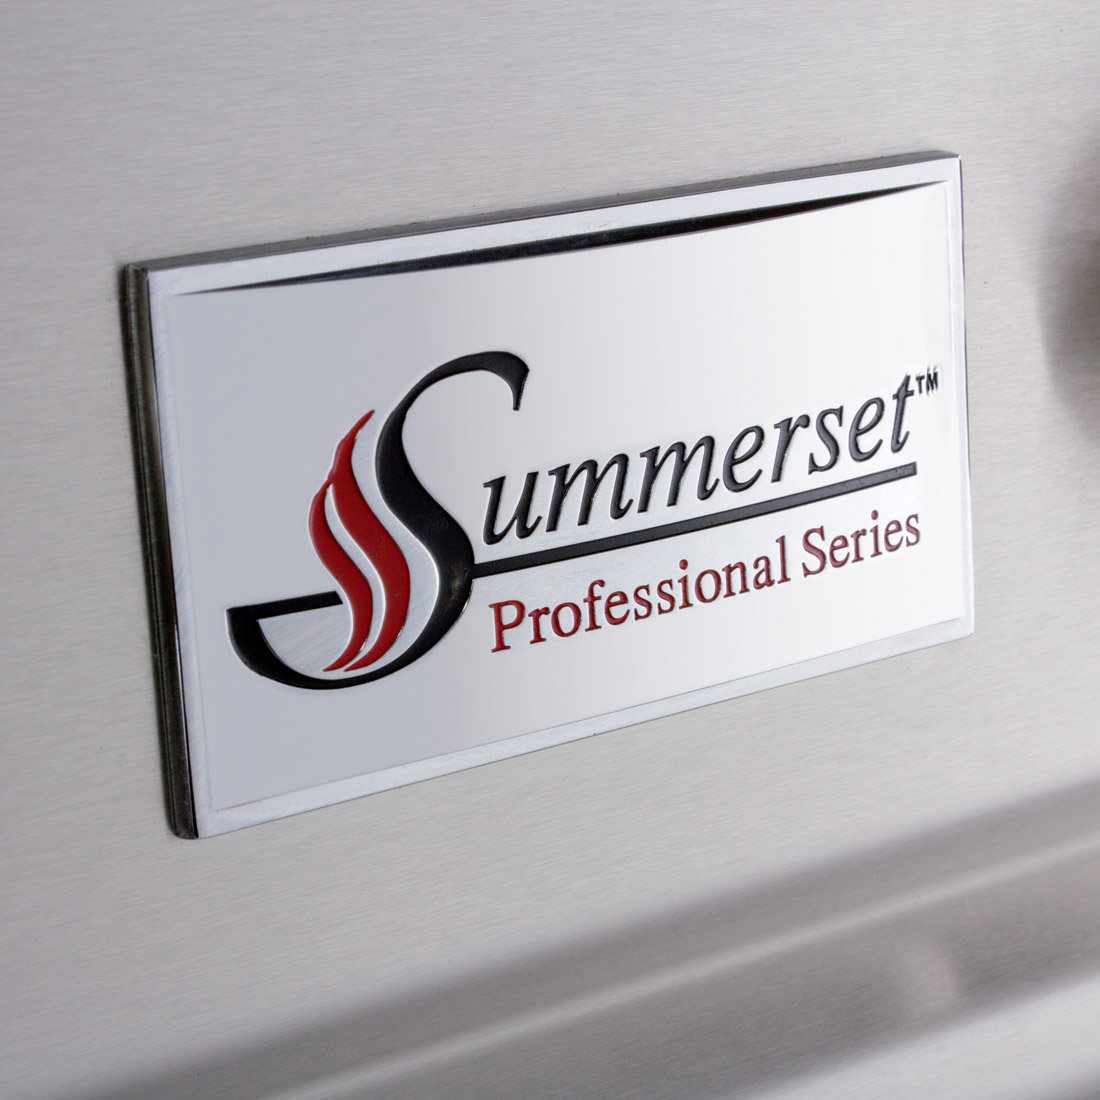 Summerset Trld 32 Quot Built In Grill Deluxe Stainless Steel Rotisserie Halogen And Led Lights